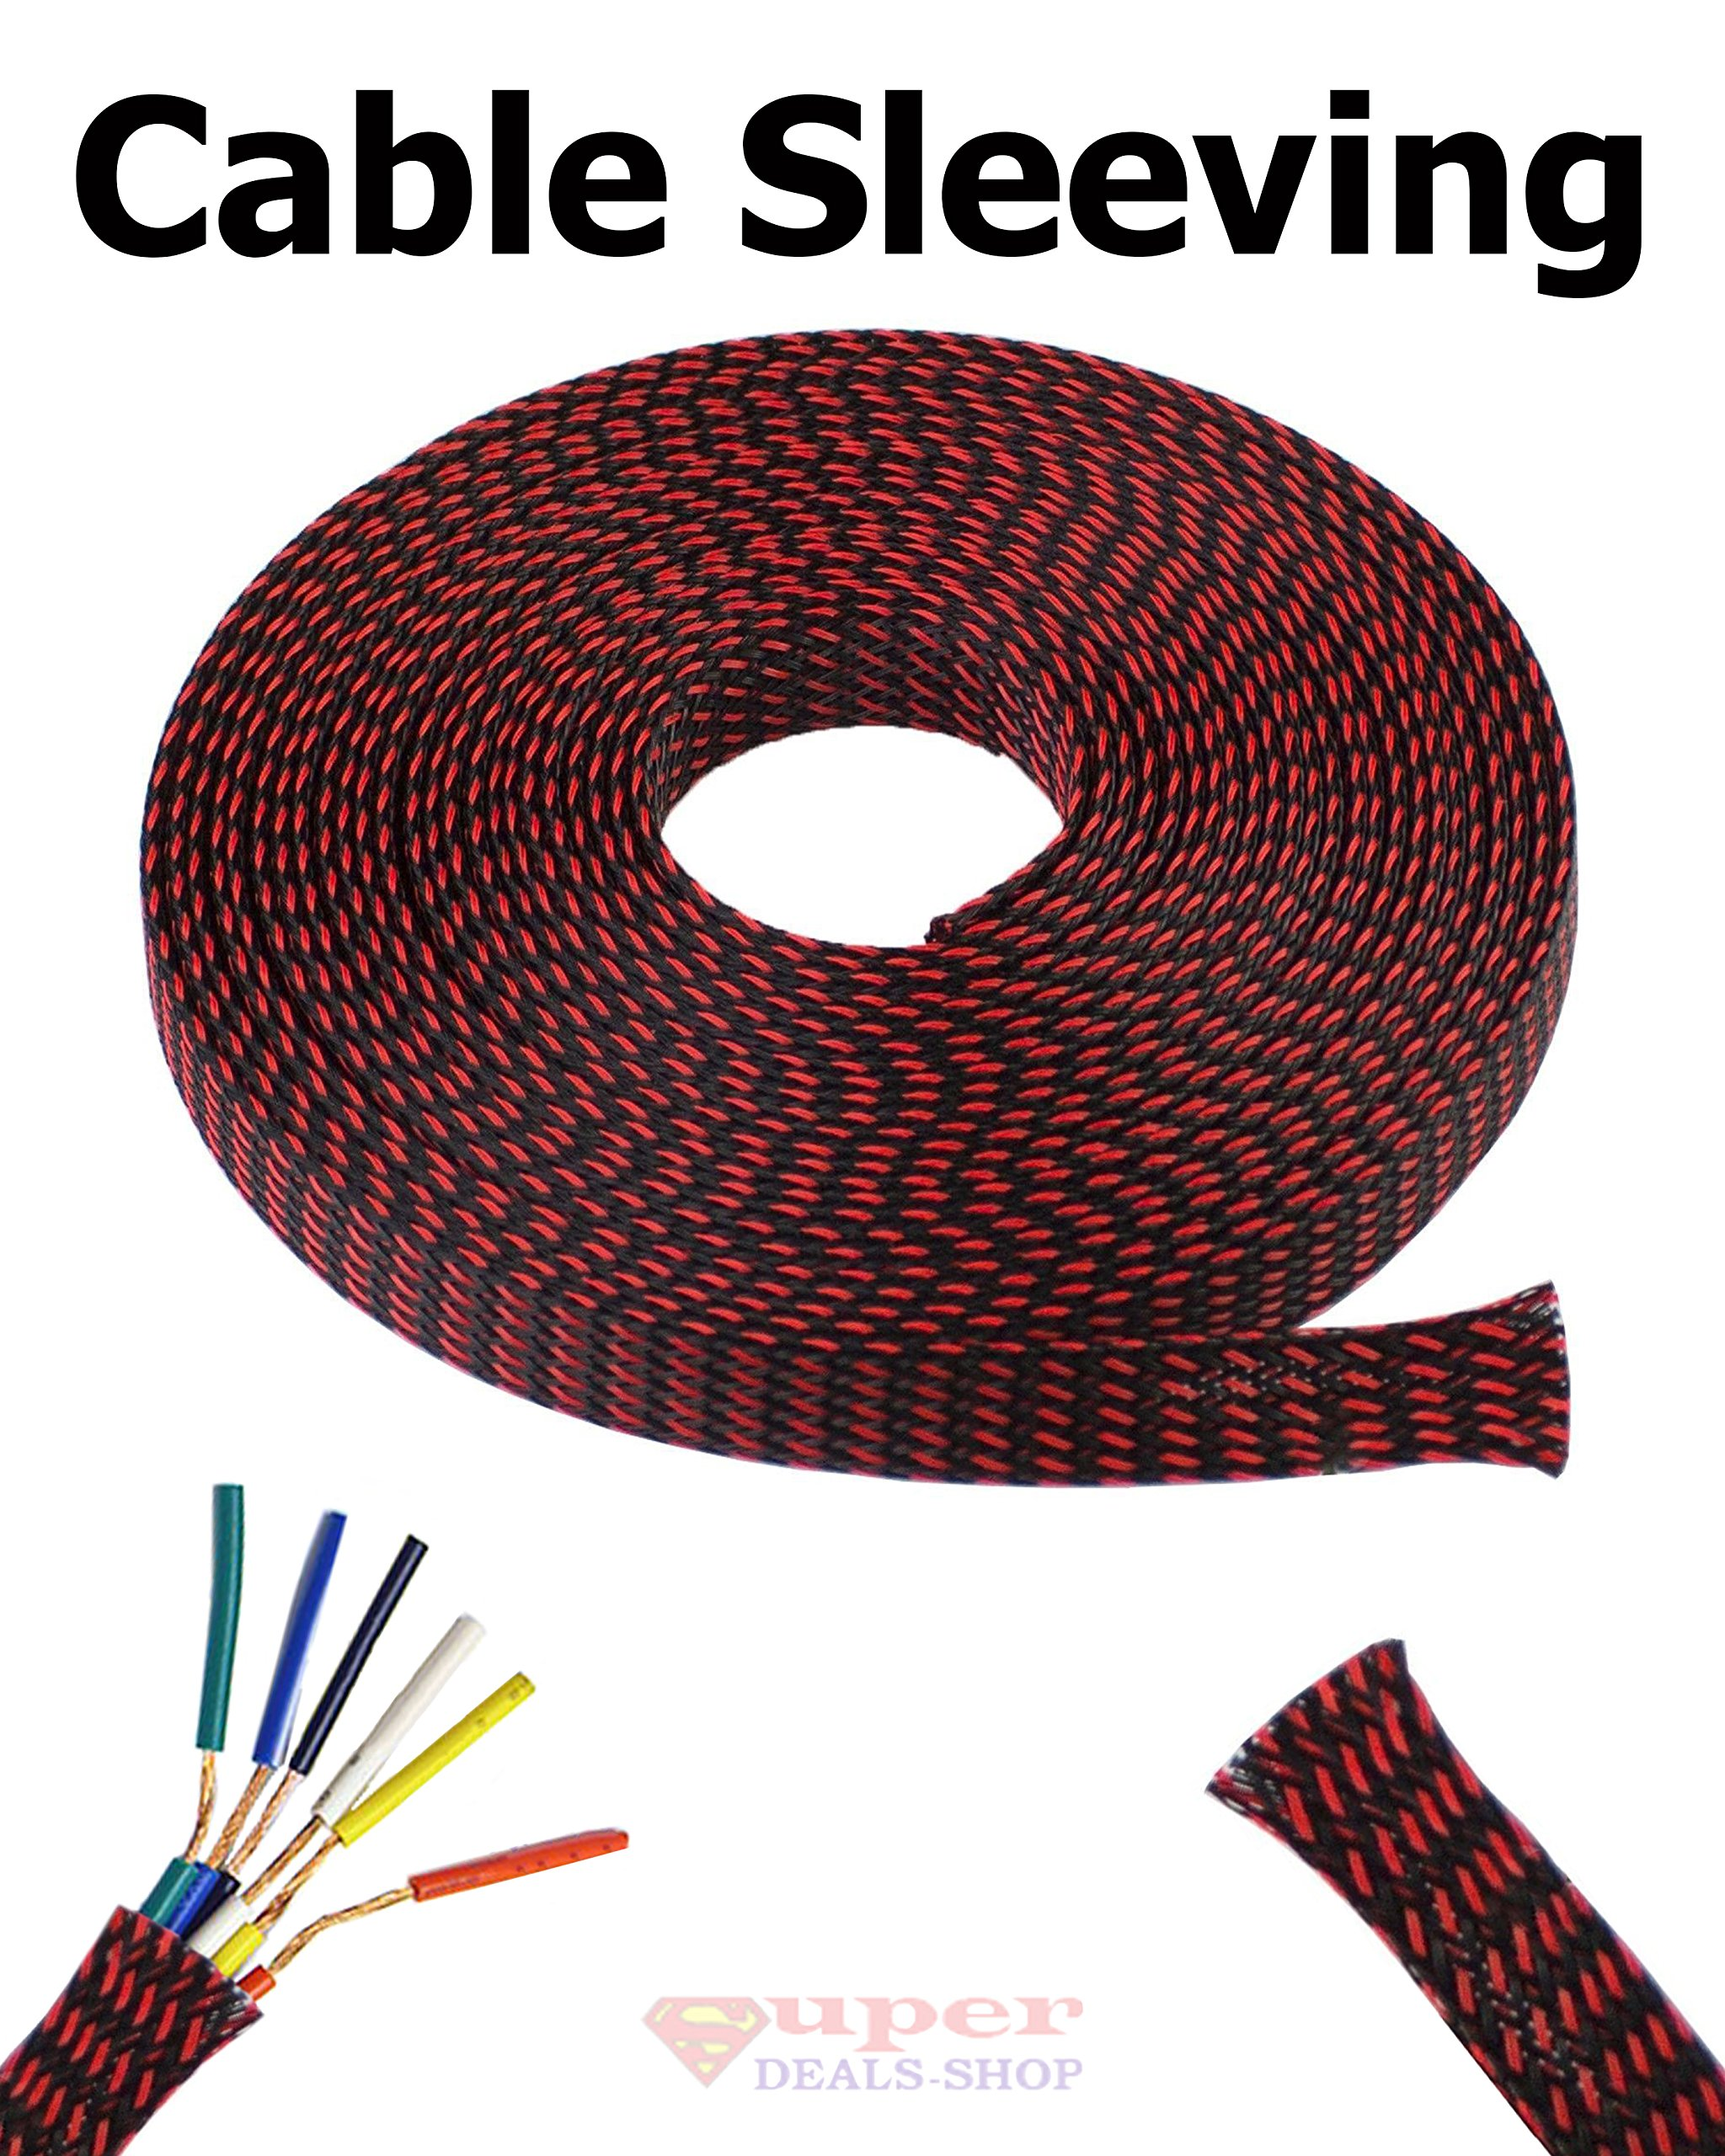 1/4'' Expandable Wire Cable Sleeving Expandable Braided Sleeving Braided Cable Sleeve Expandable Braided Cord Sleeve Cord Managment Super-Deals-Shop (100 FT 1/4'', Black and Red)